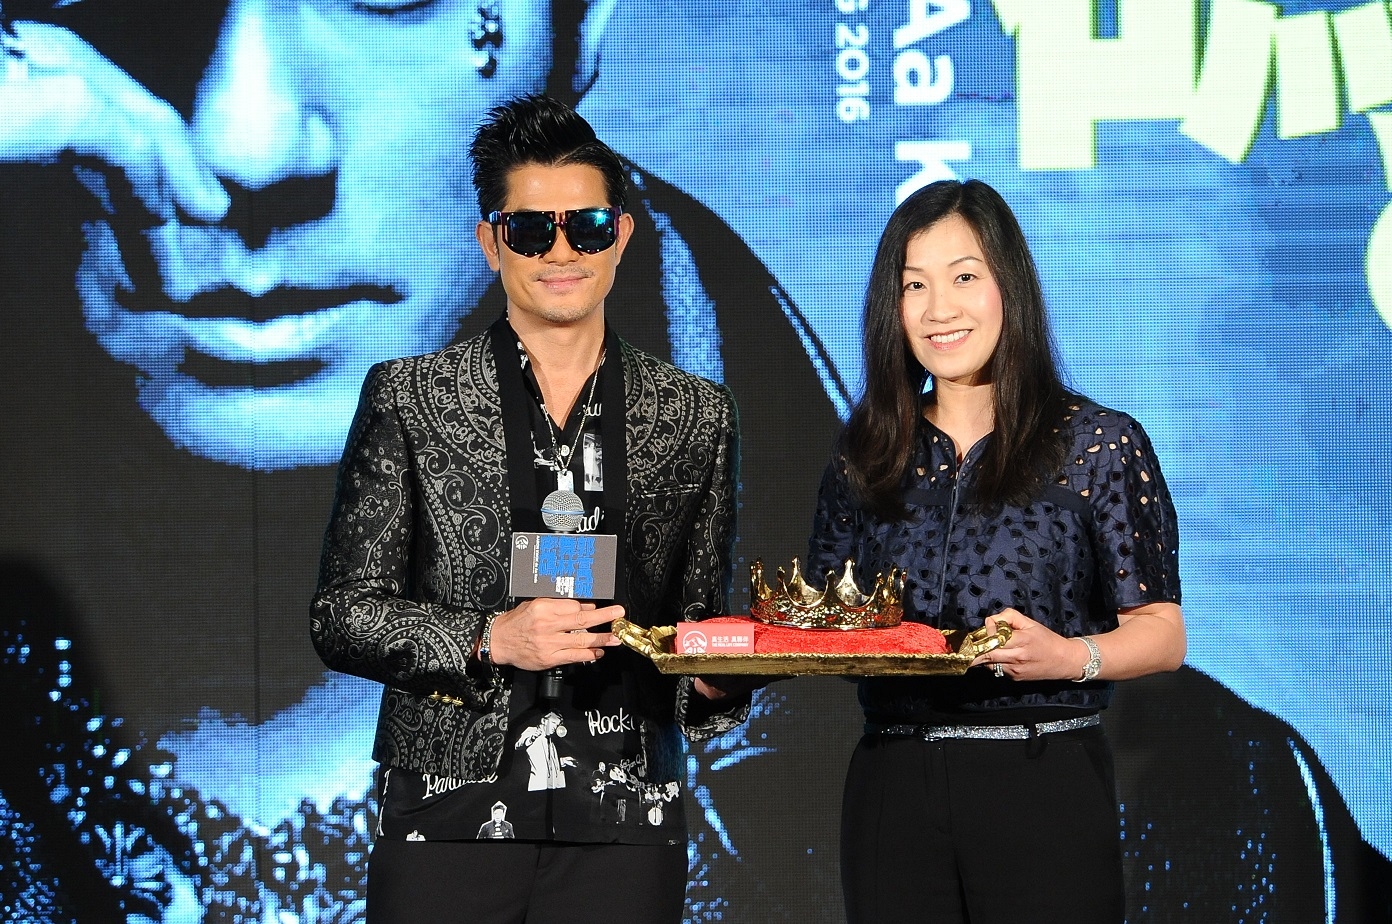 Aaron Kwok's interactive stage to achieve world record?